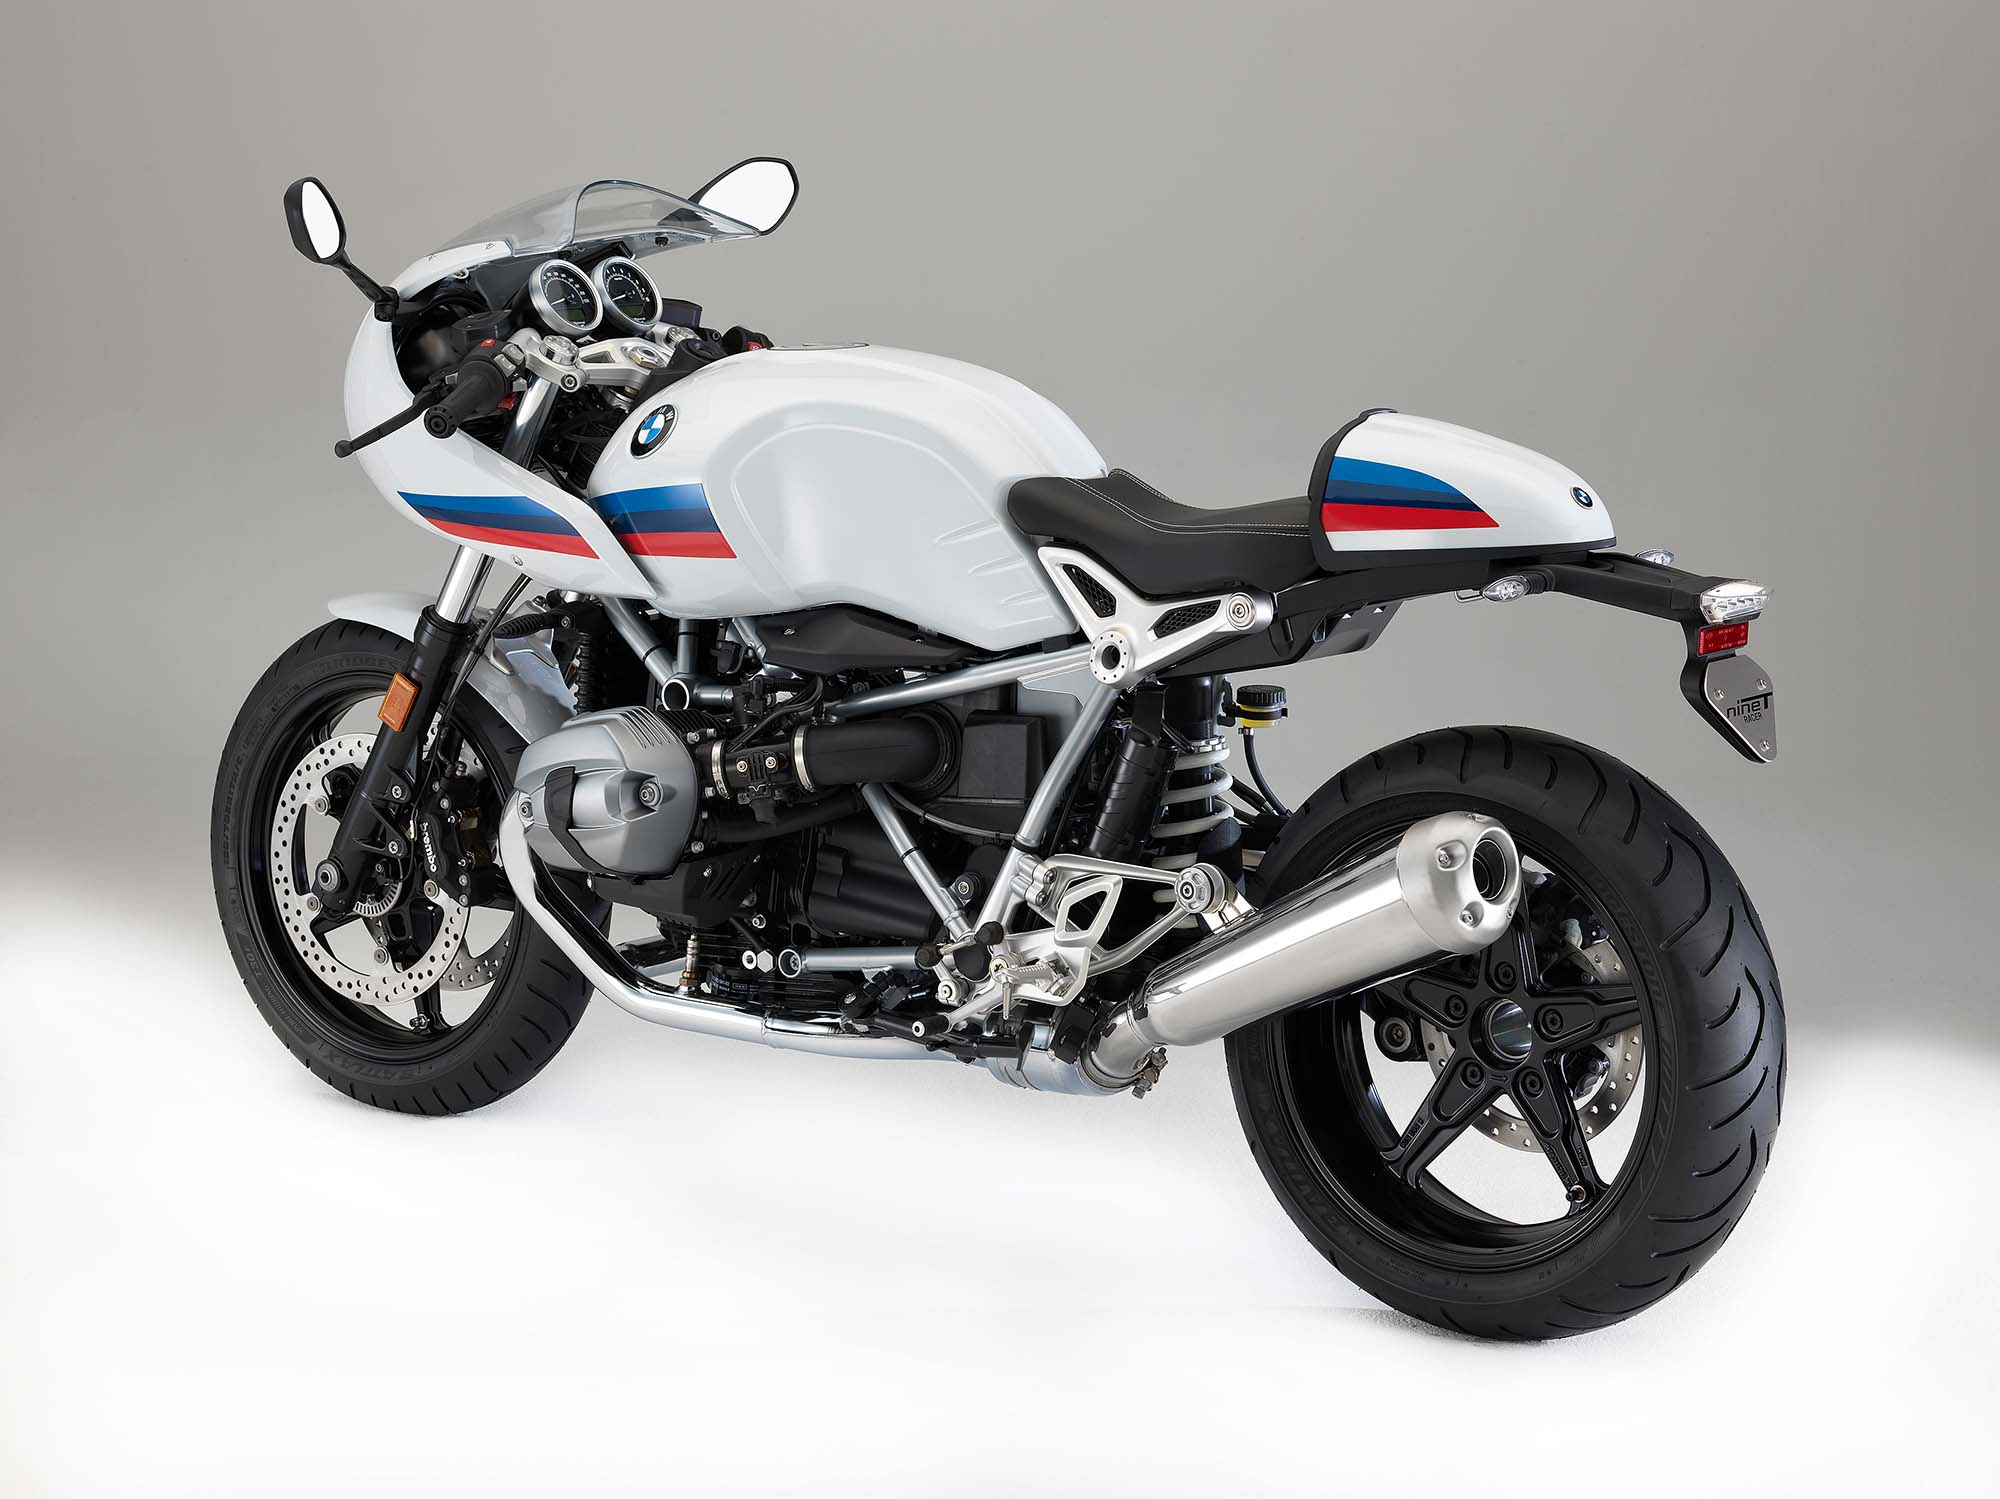 bmw r ninet racer - yet another café racer